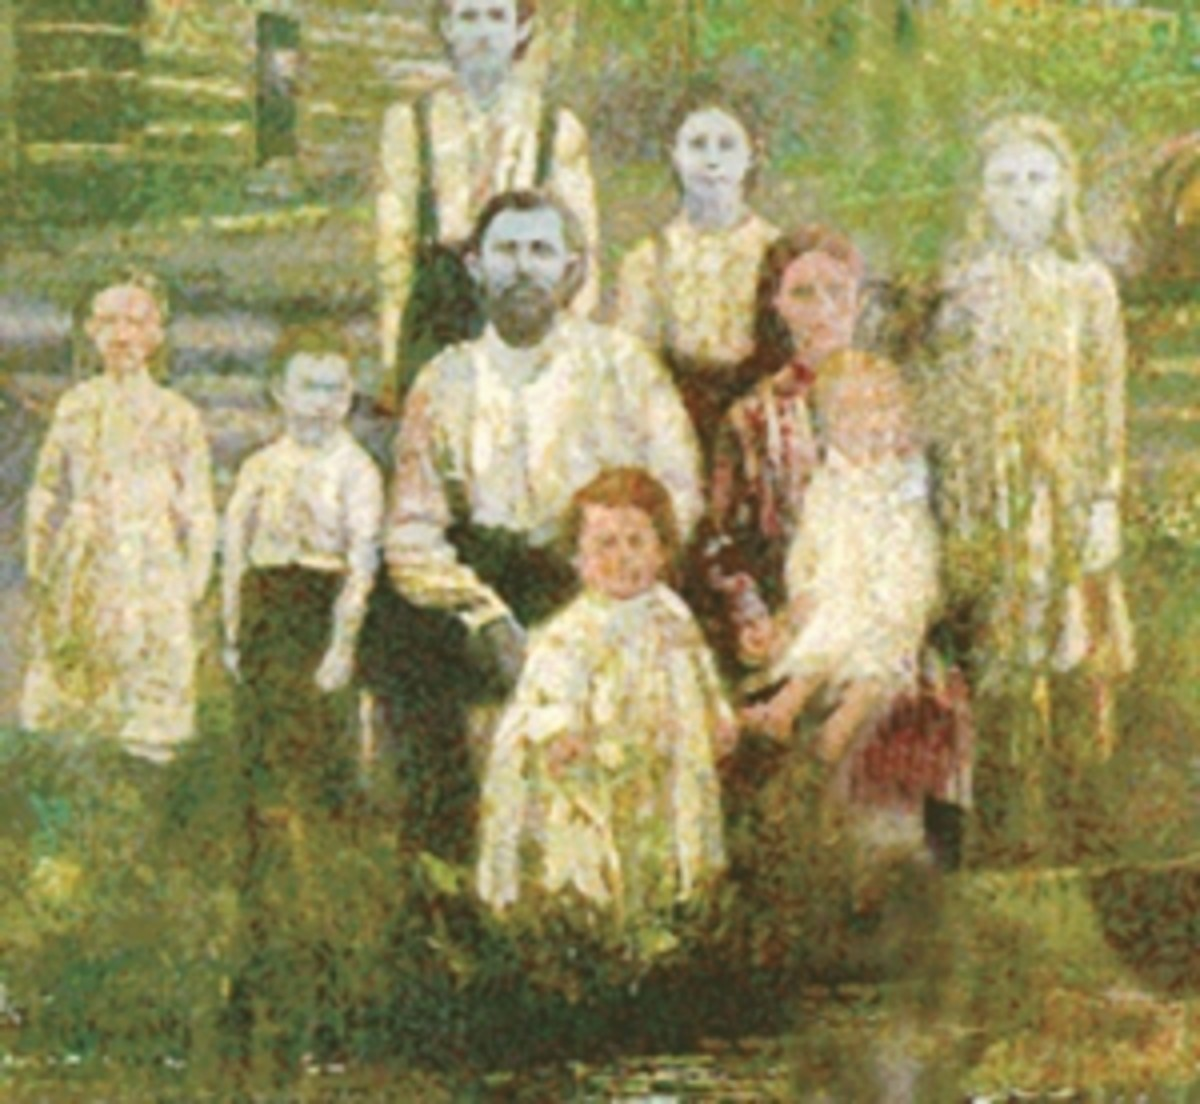 The Fugate family of Hazard, Kentucky